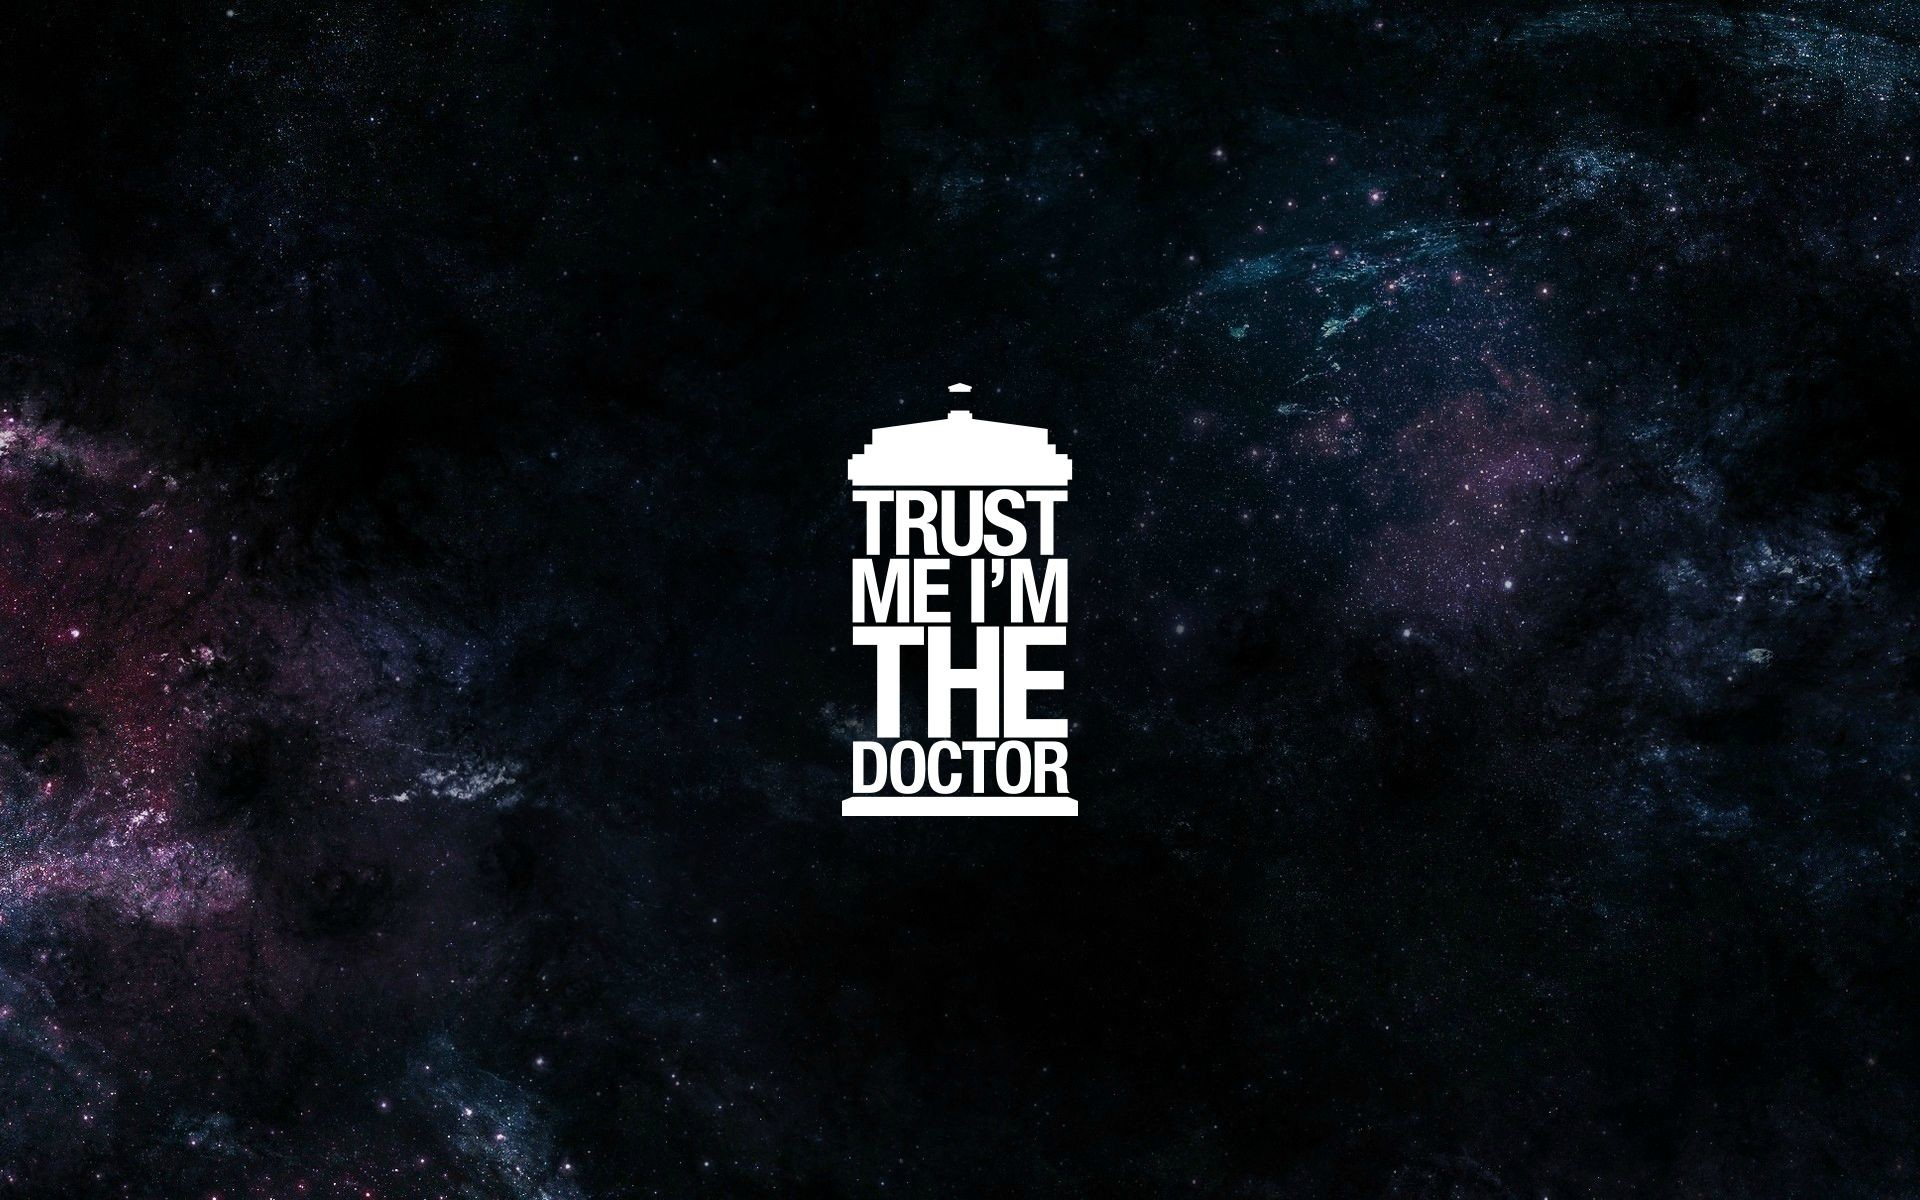 Top Wallpaper Home Screen Doctor Who - 827075-free-download-doctor-who-wallpaper-1366x768-1920x1200-for-android-50  Best Photo Reference_955353.jpg